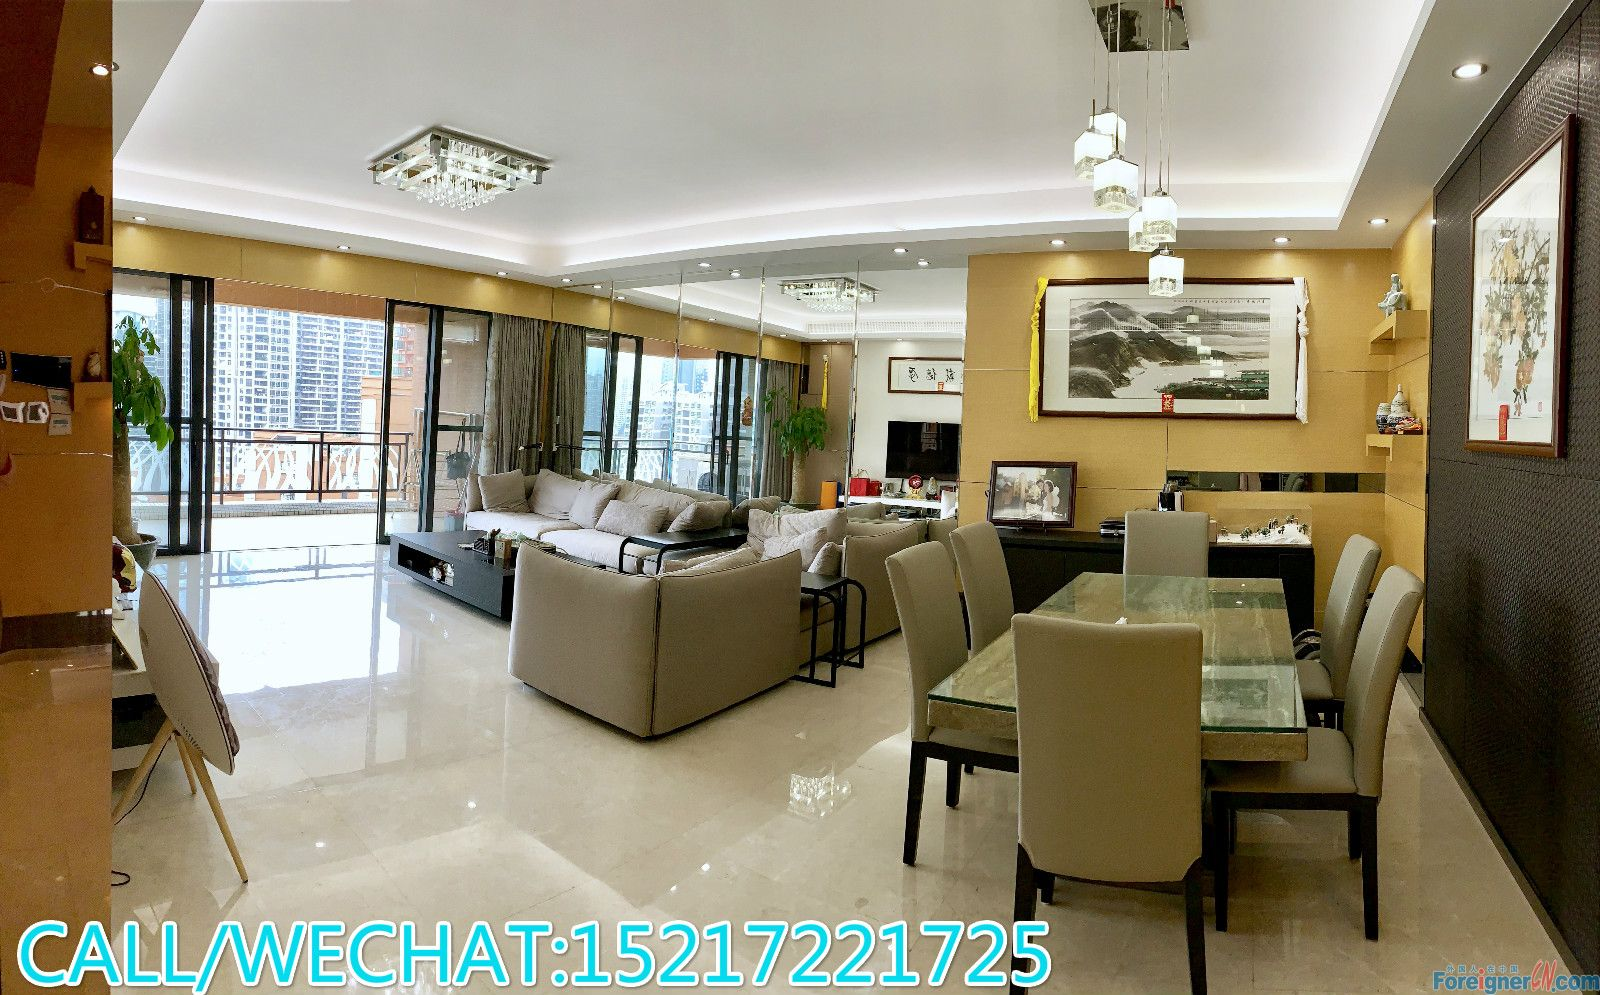 Central park View-high quality decorate,large compound,good layout,good condition,new building,CBD area,convenient.